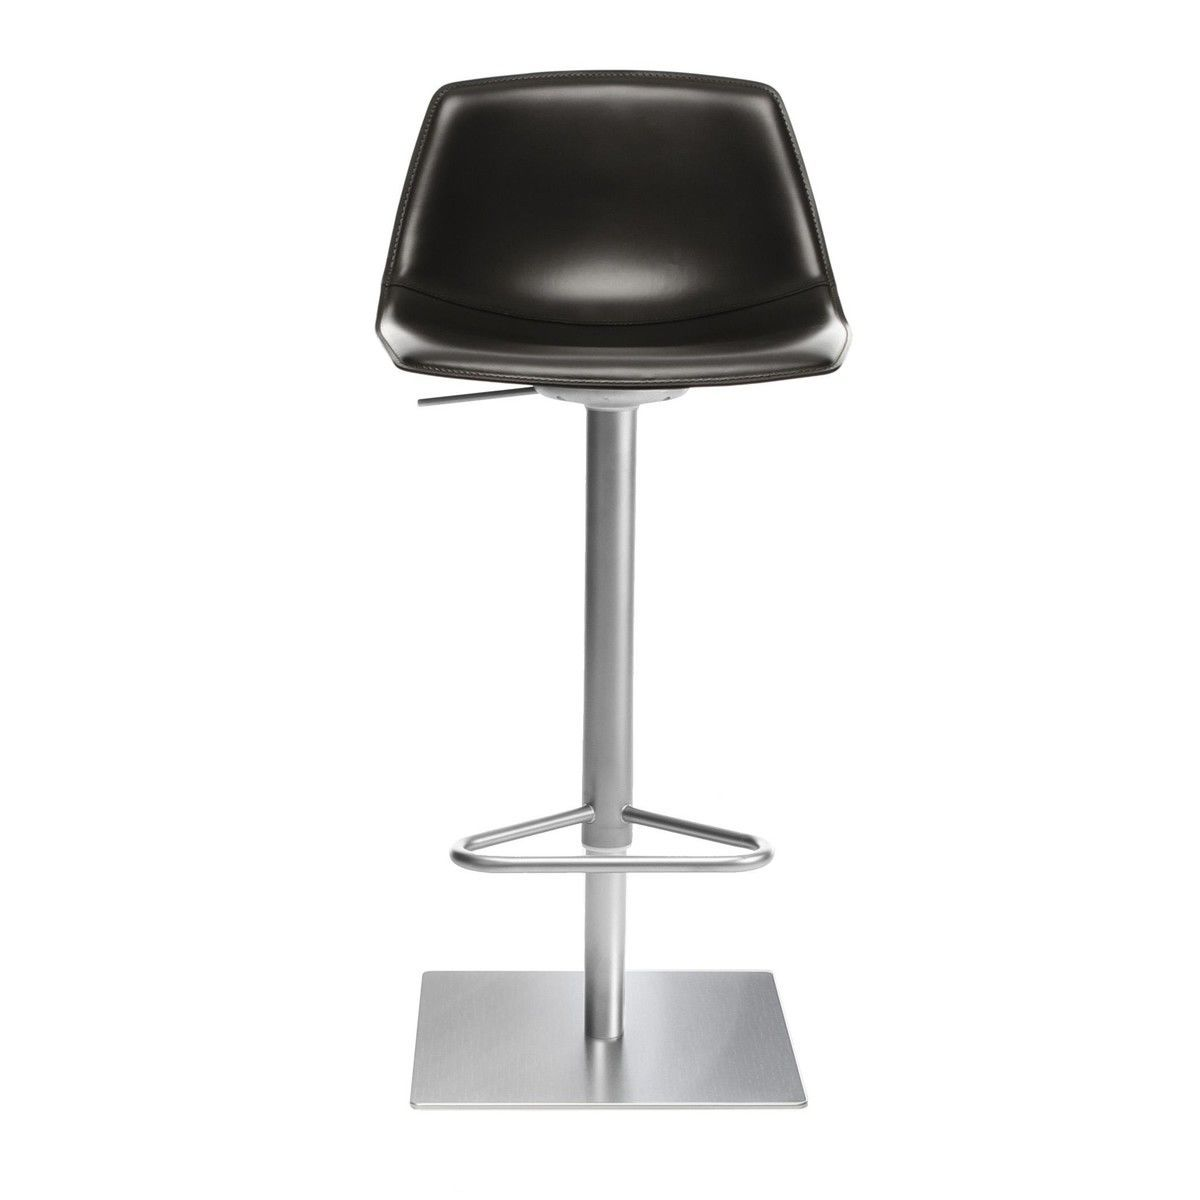 Miunn Bar Stool Stainless Steel Frame Square La Palma